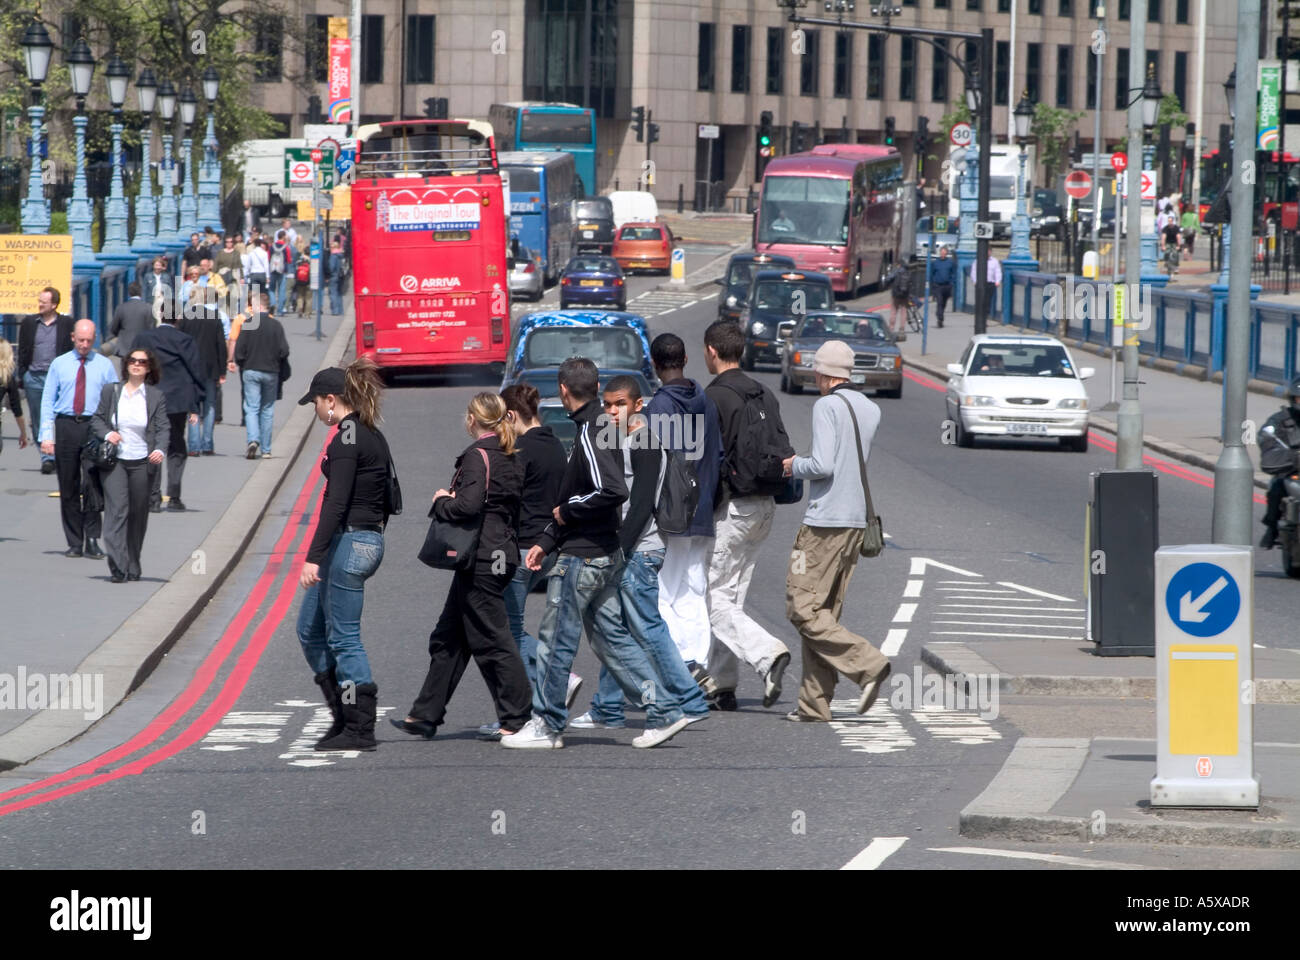 people crossing the road using a zebra crossing in the city of london, england Stock Photo